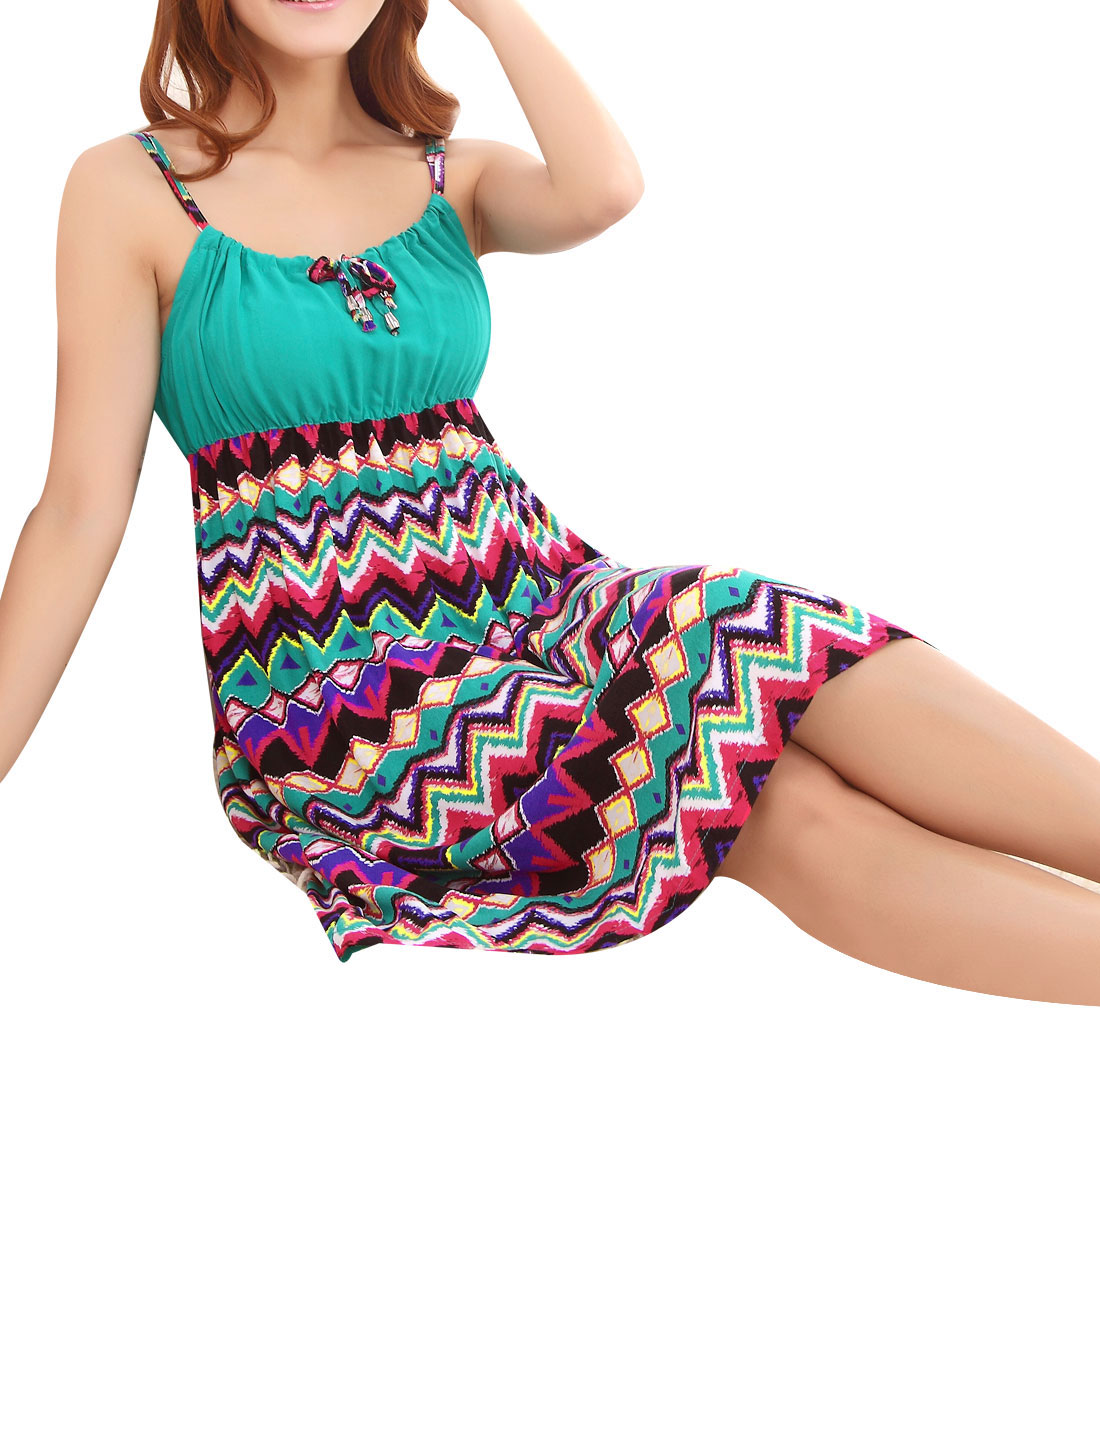 Woman Sleeveless Colorful Zigzag Pattern Nightgown Dress XS